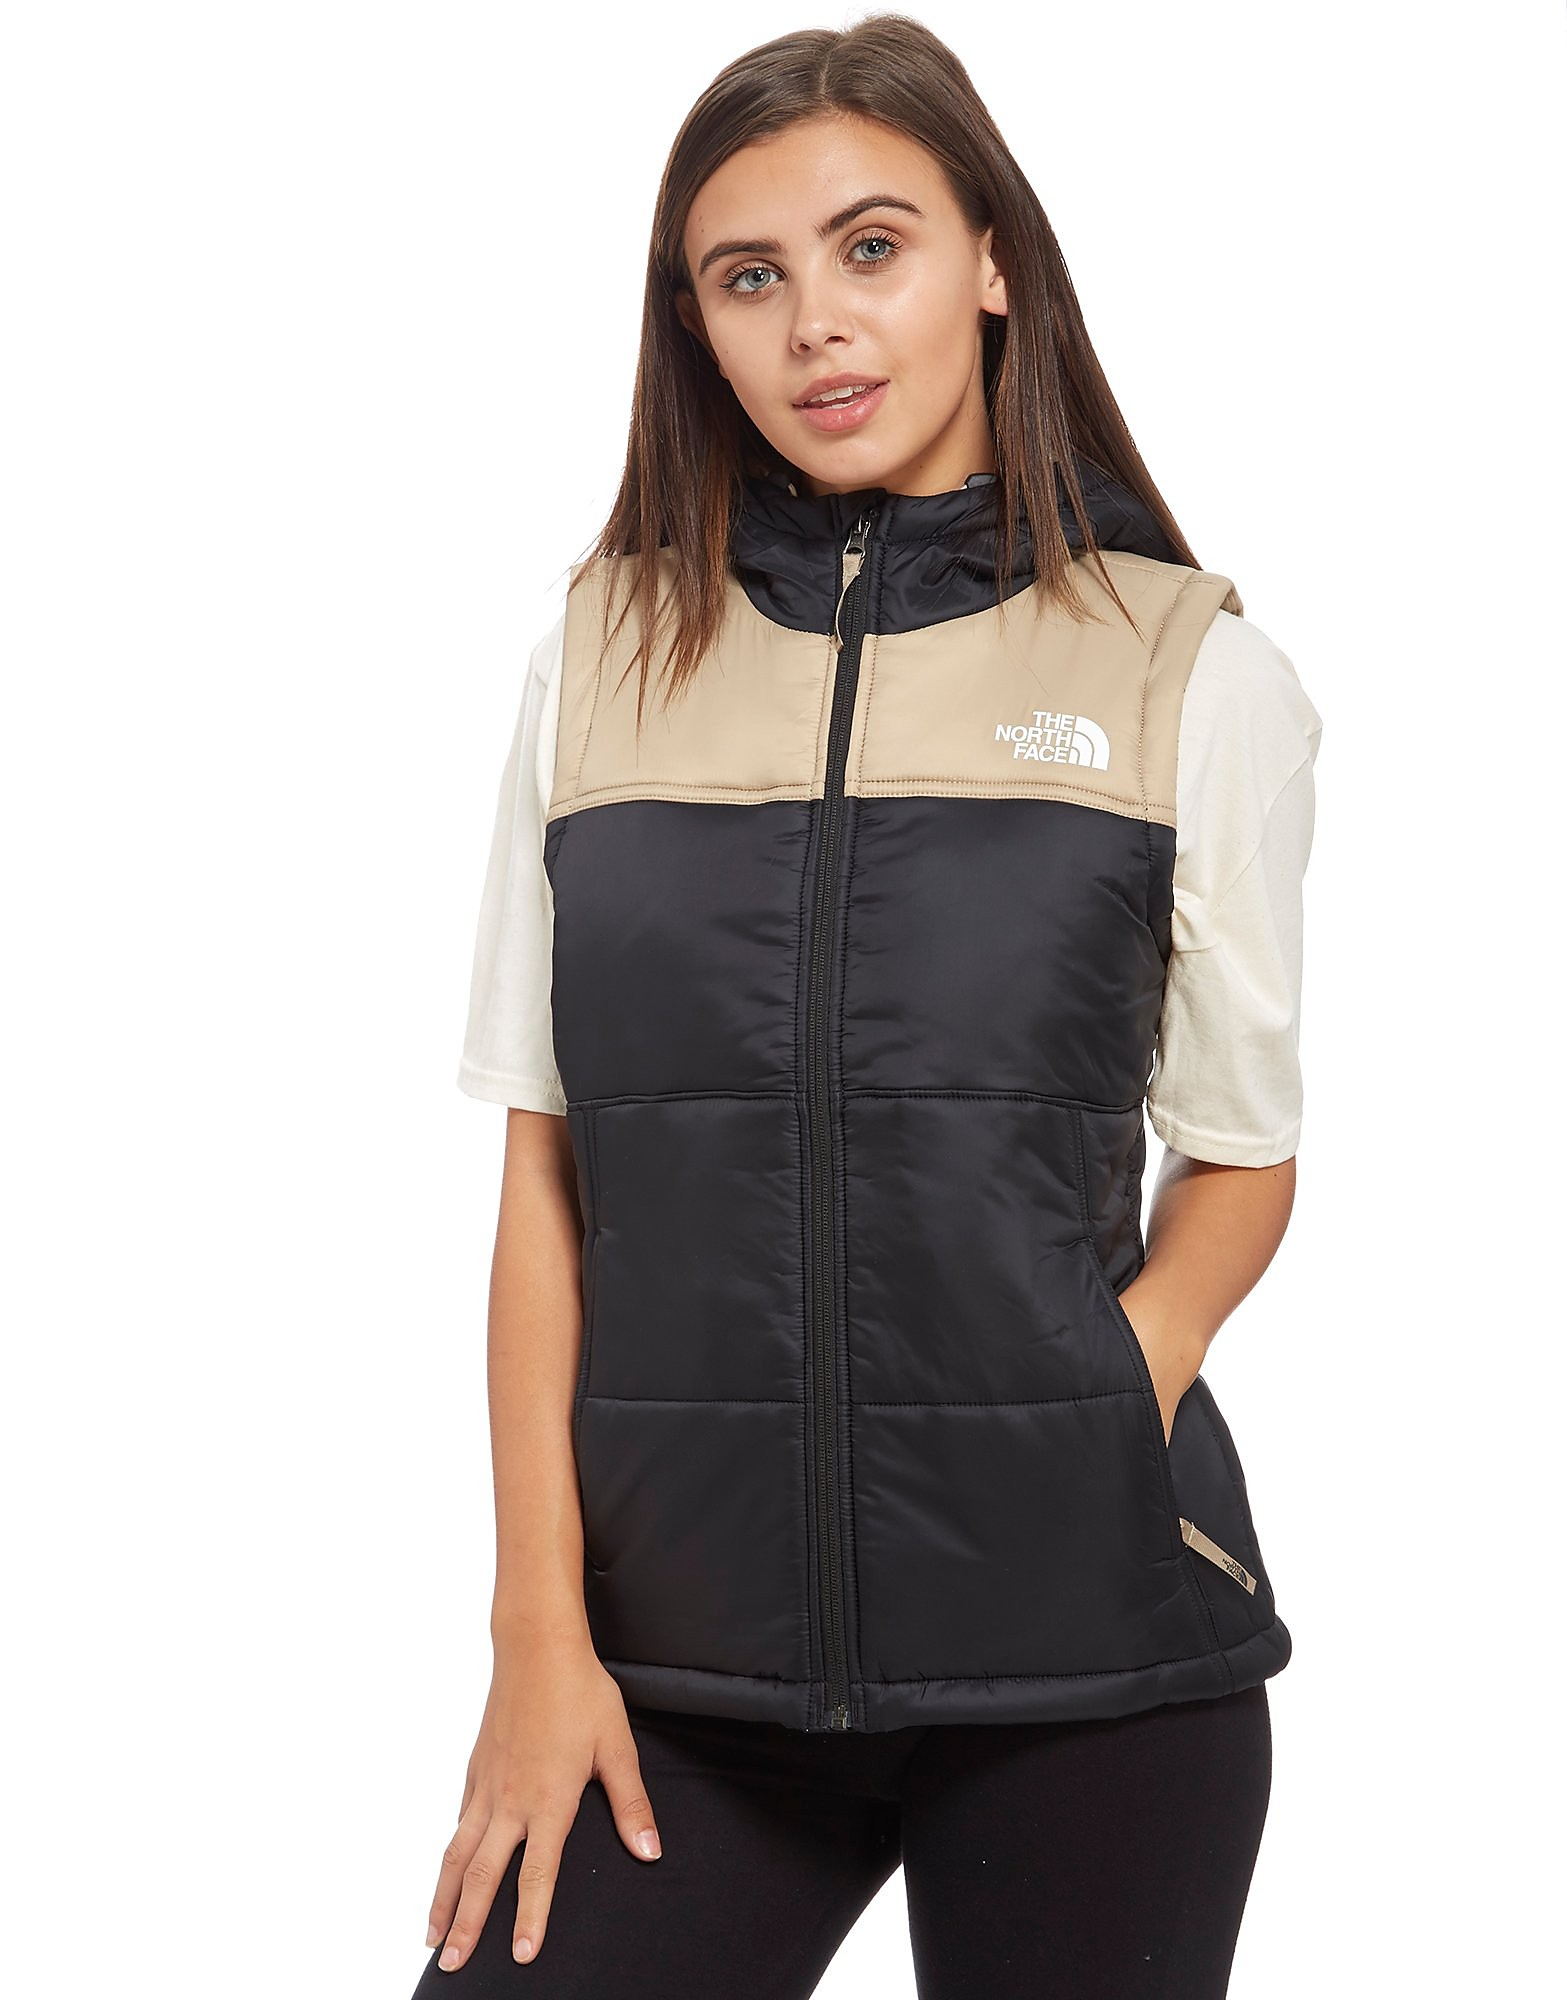 The North Face Panel Gilet